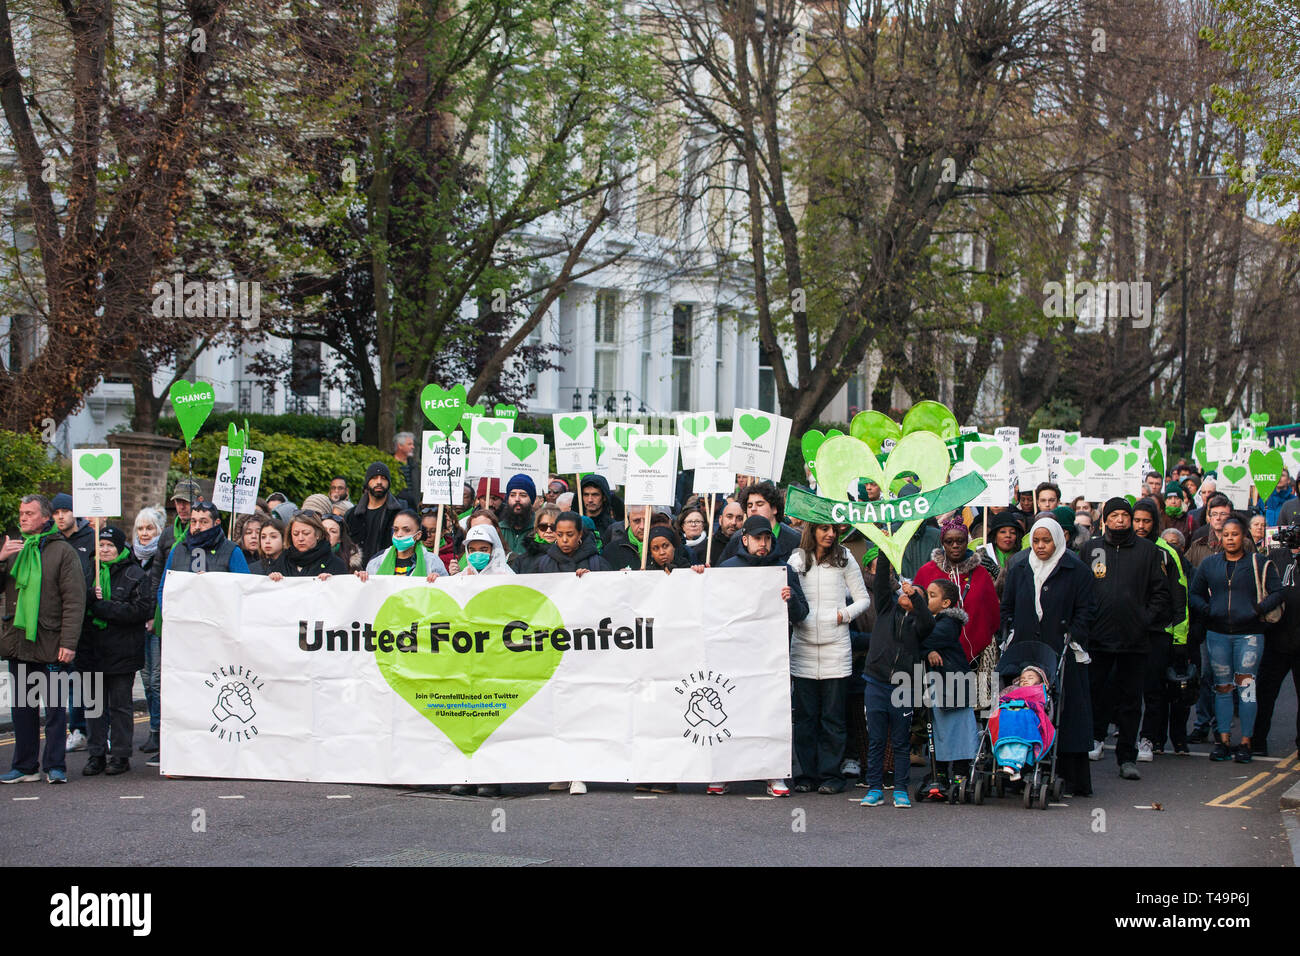 London, UK. 14th April 2019. Members of the Grenfell community and firefighters take part in the Grenfell Silent Walk around North Kensington on the monthly anniversary of the fire on 14th June 2017. 72 people died in the Grenfell Tower fire and over 70 were injured. Credit: Mark Kerrison/Alamy Live News Stock Photo